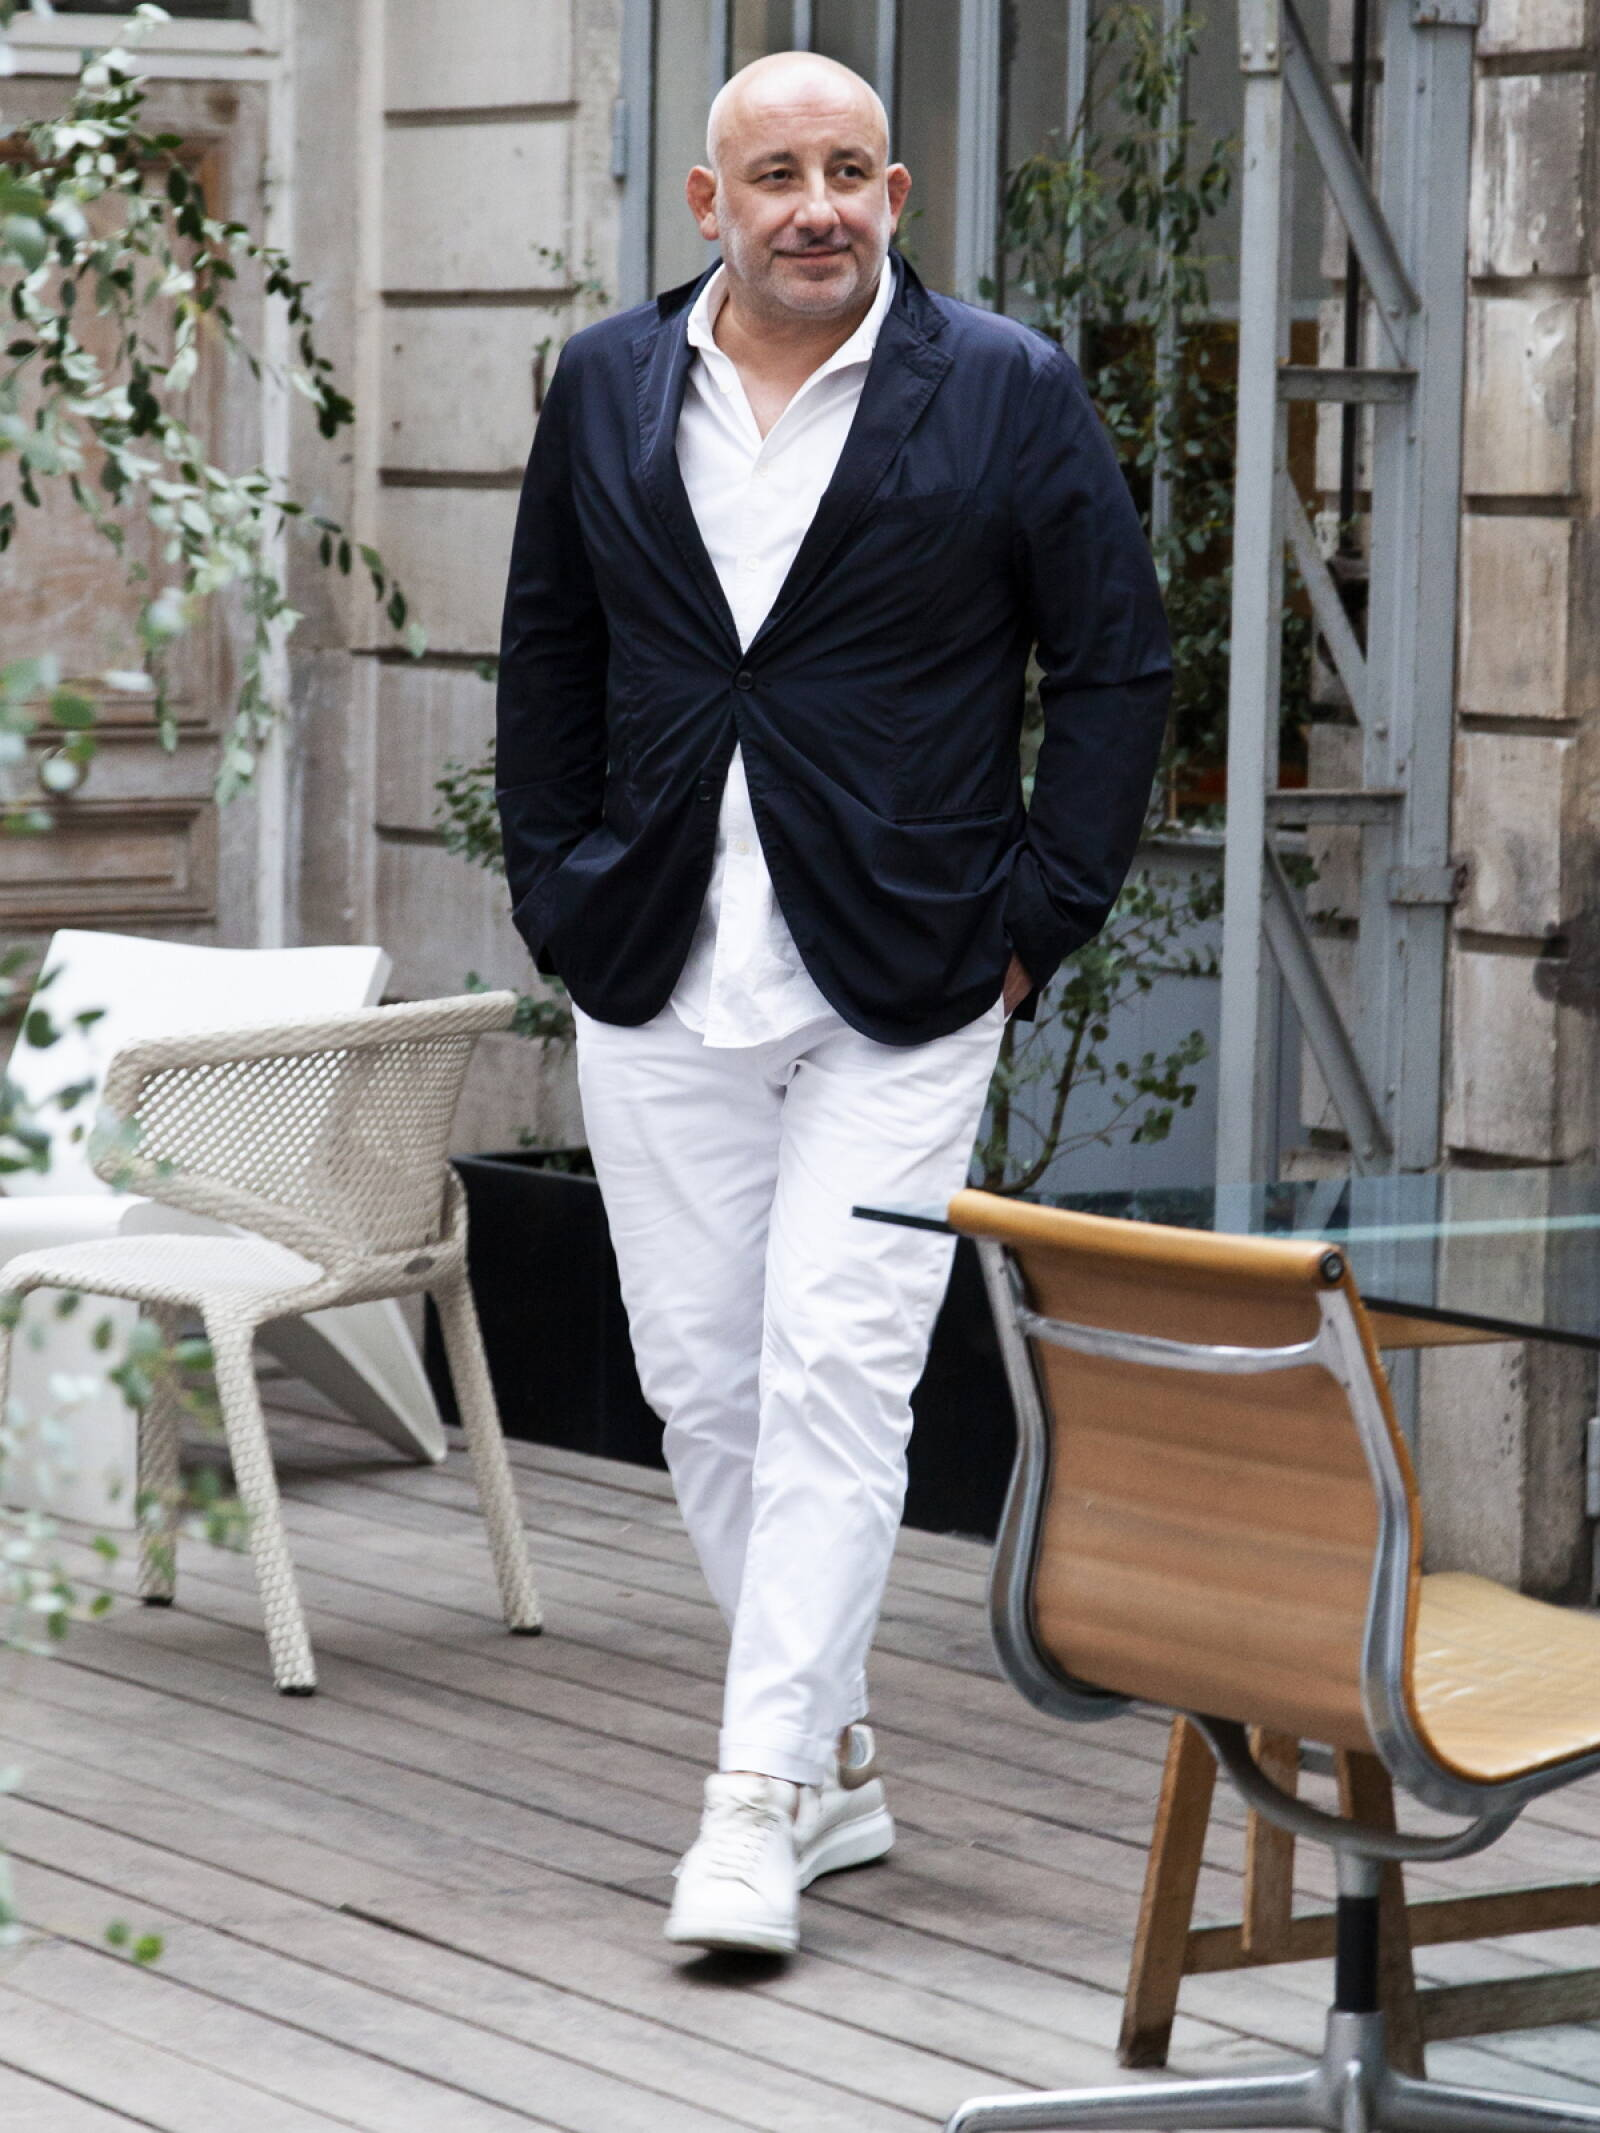 The Toulouse-born designer, Jean-Marie Massaud, in his trademark whites.